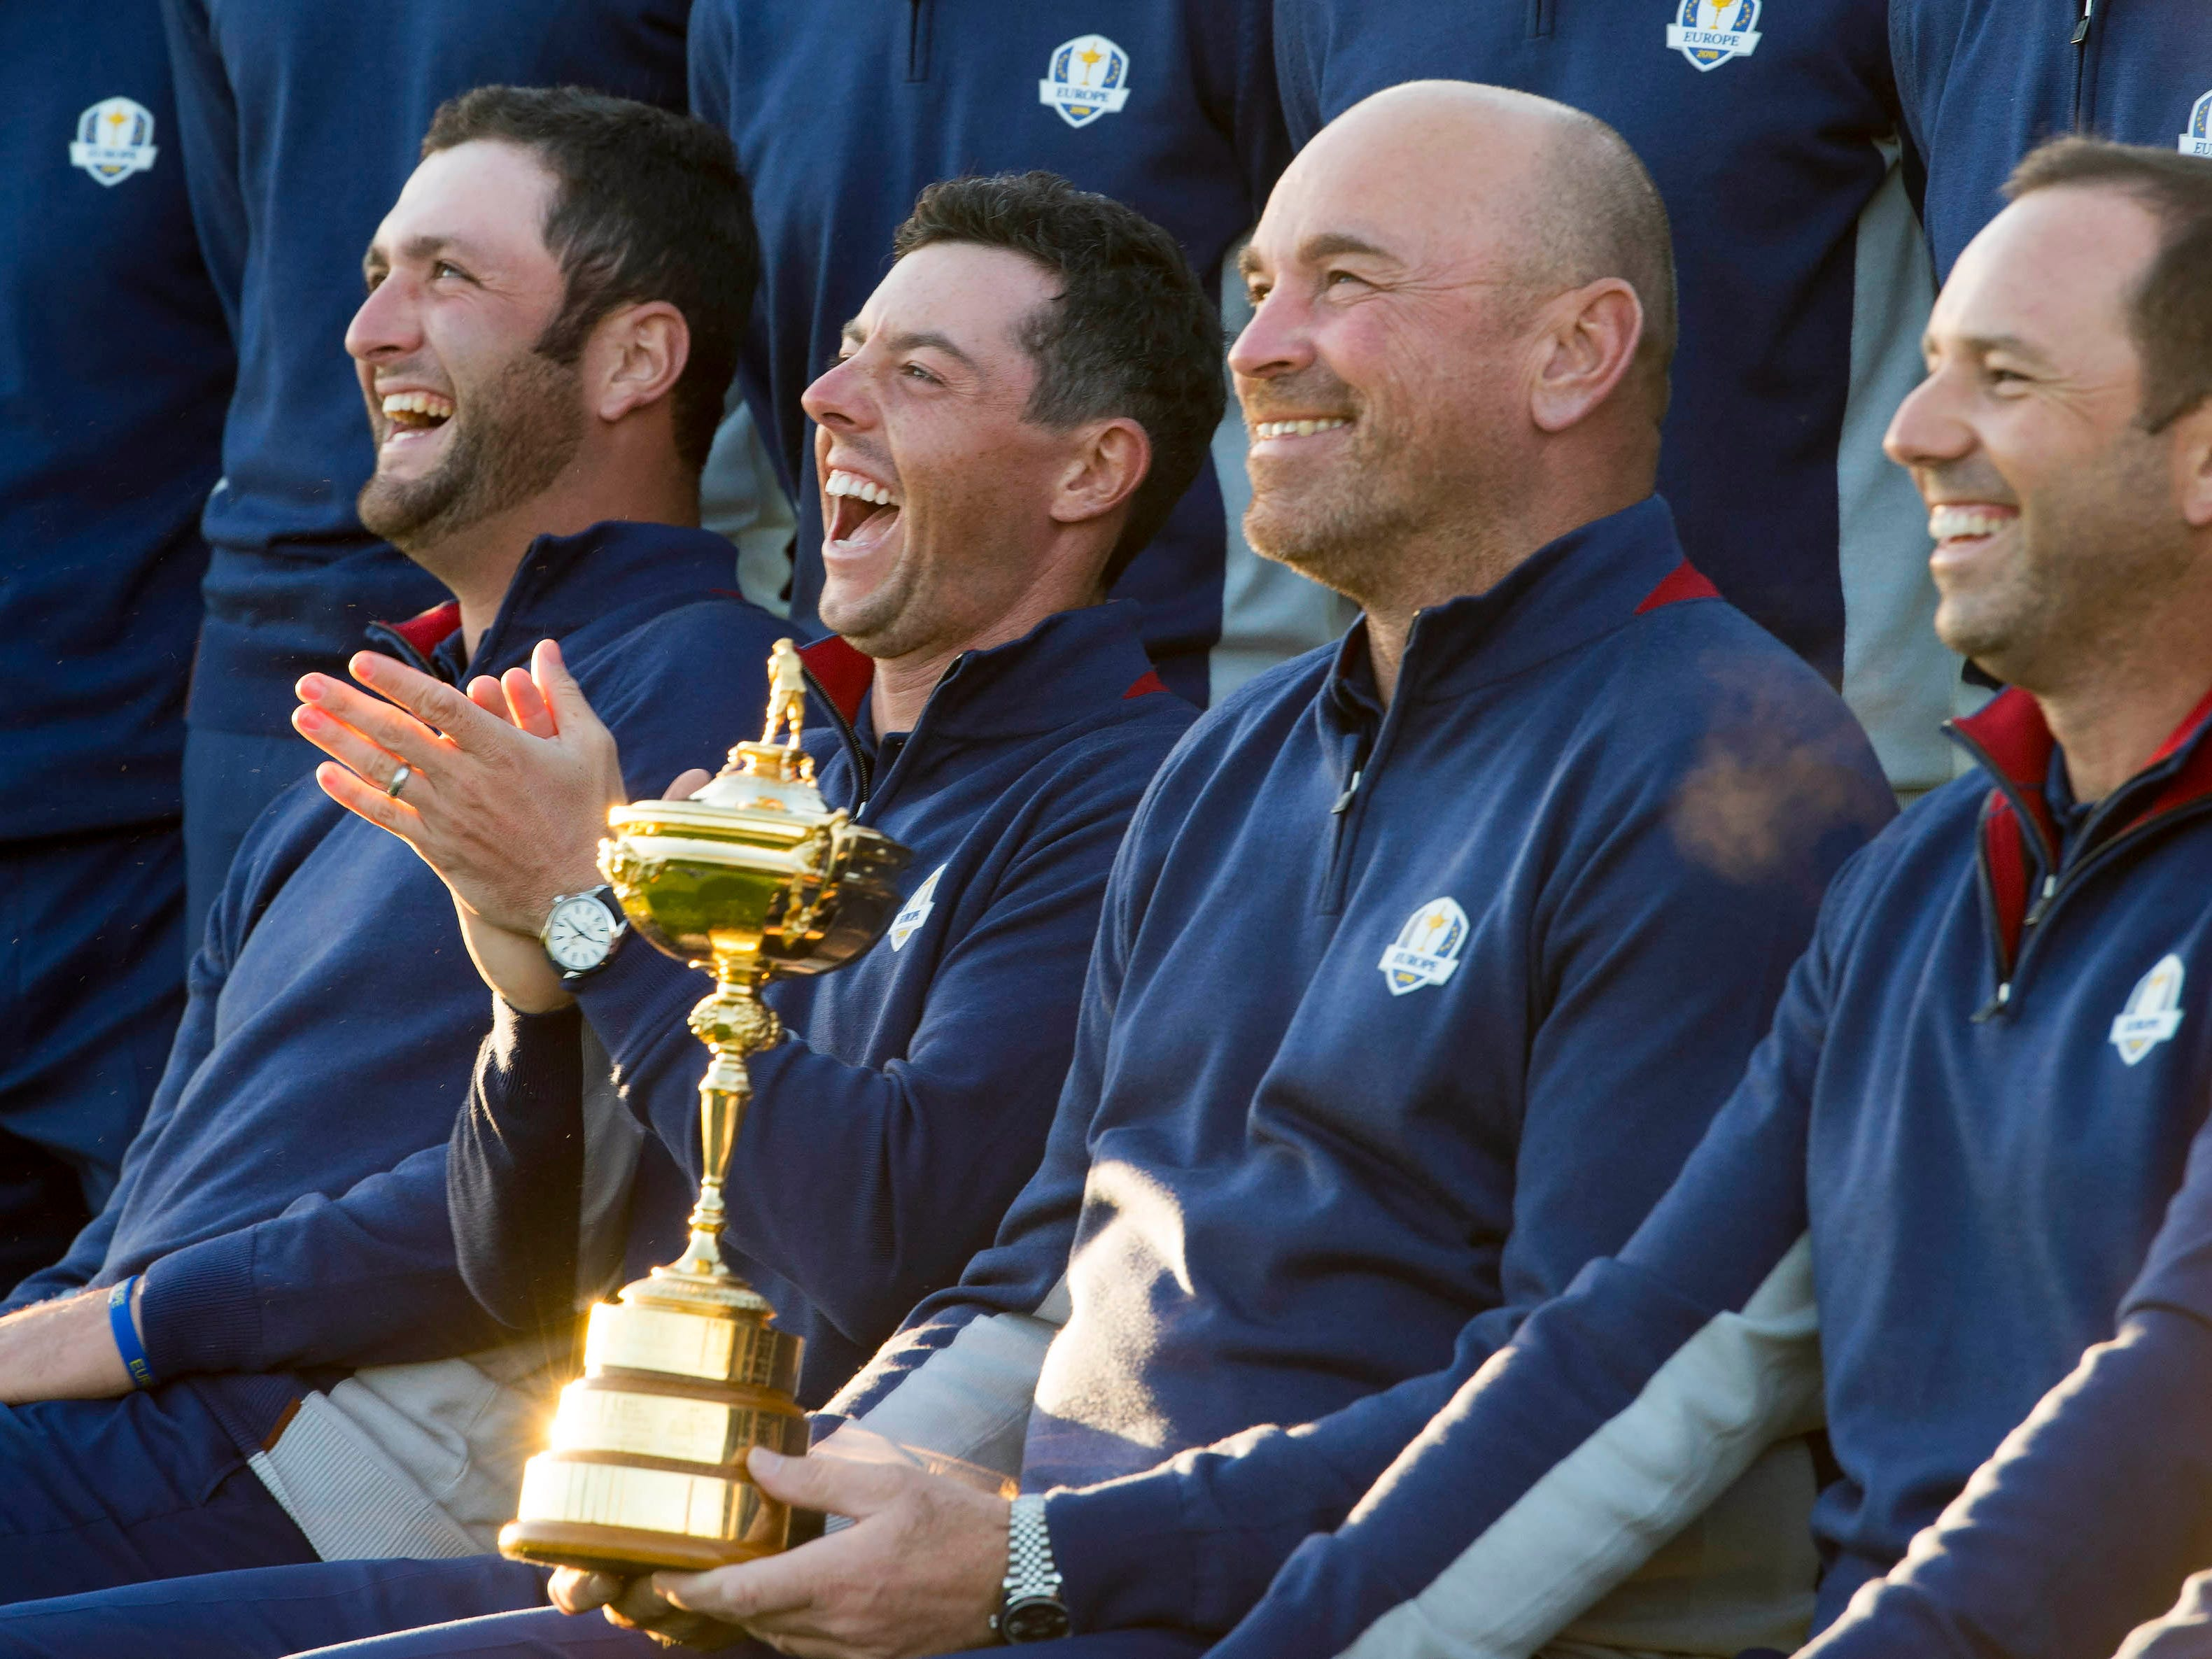 Jon Rahm (left), Rory McIlroy (left center), Thomas Bjorn (right center) and Sergio Garcia (right) enjoy a laugh during the European team photograph session.